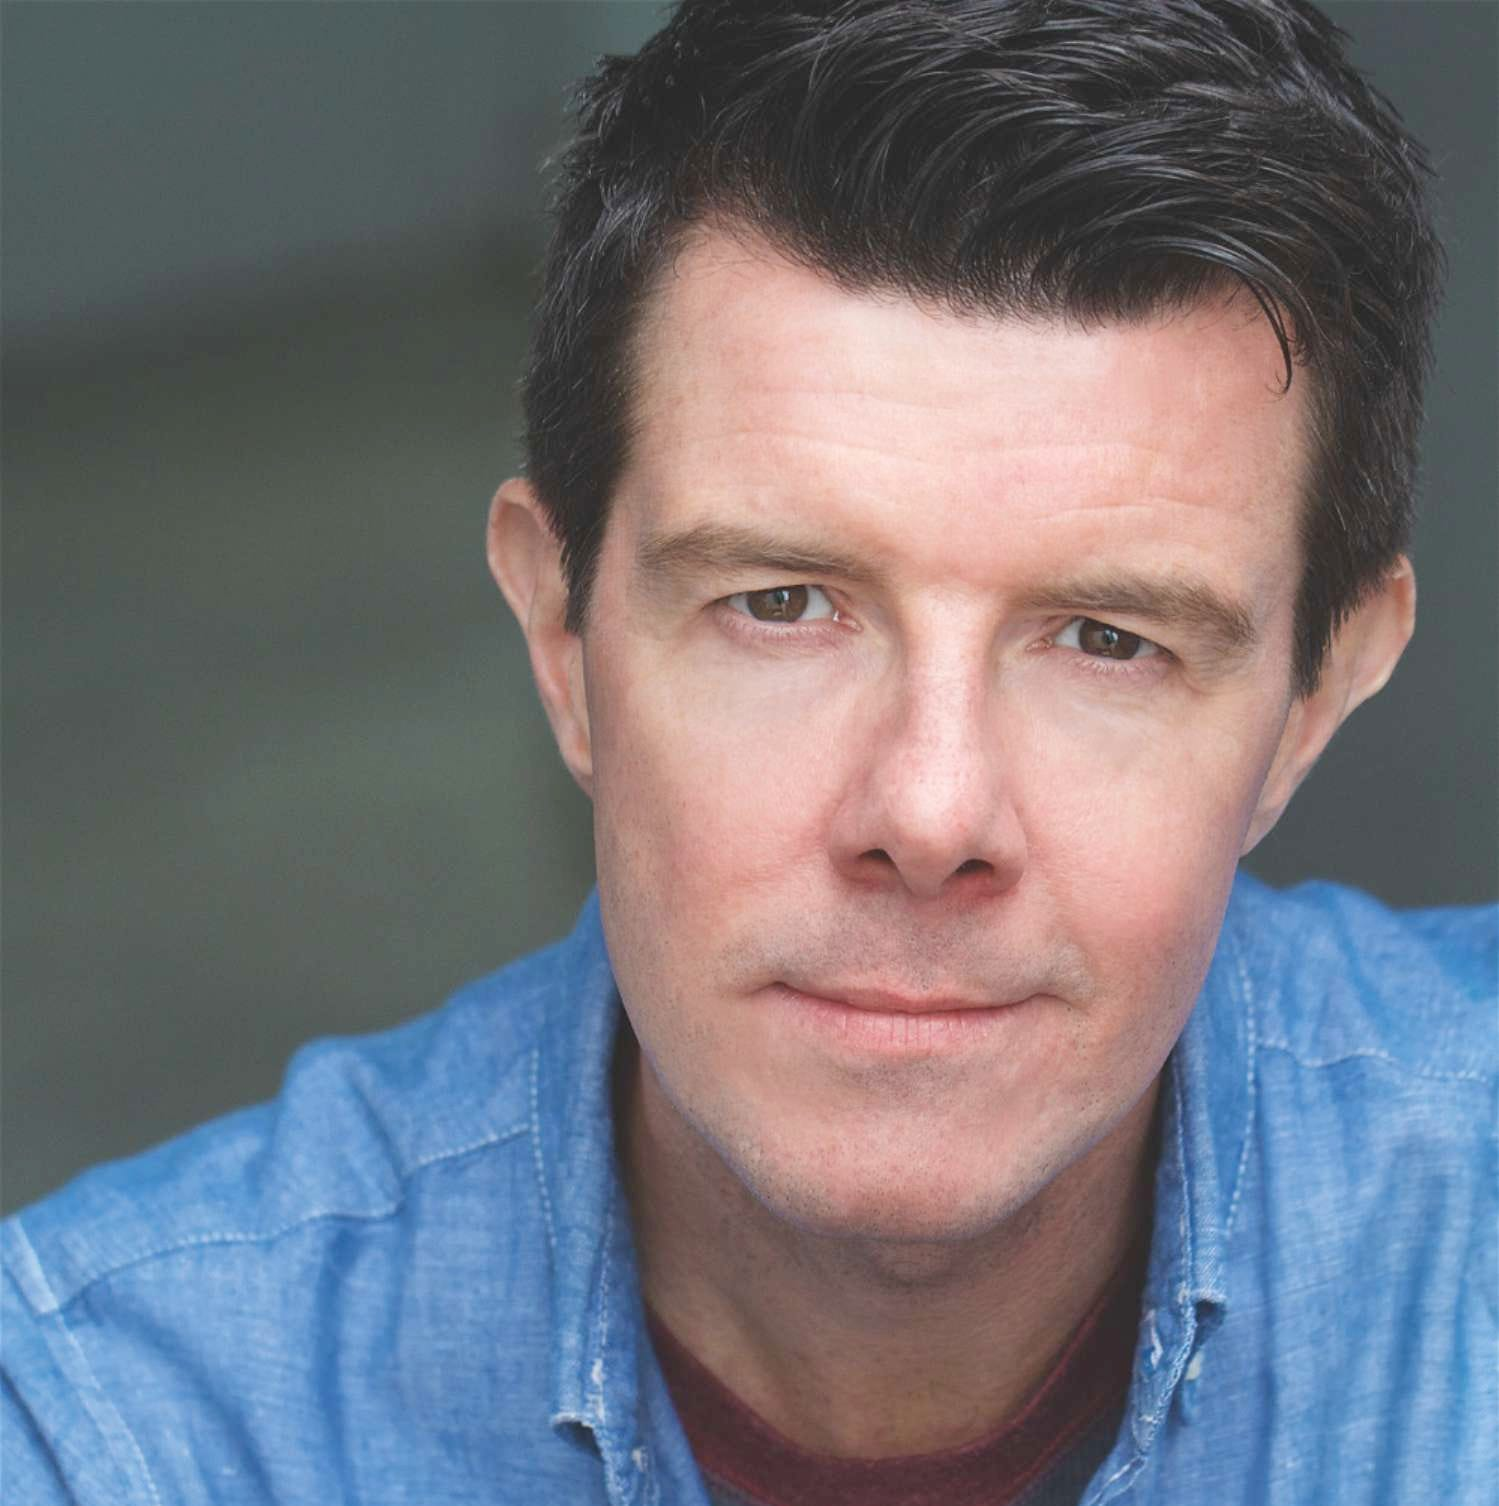 Award-winning stage actor Gavin Lee loves living in Maplewood